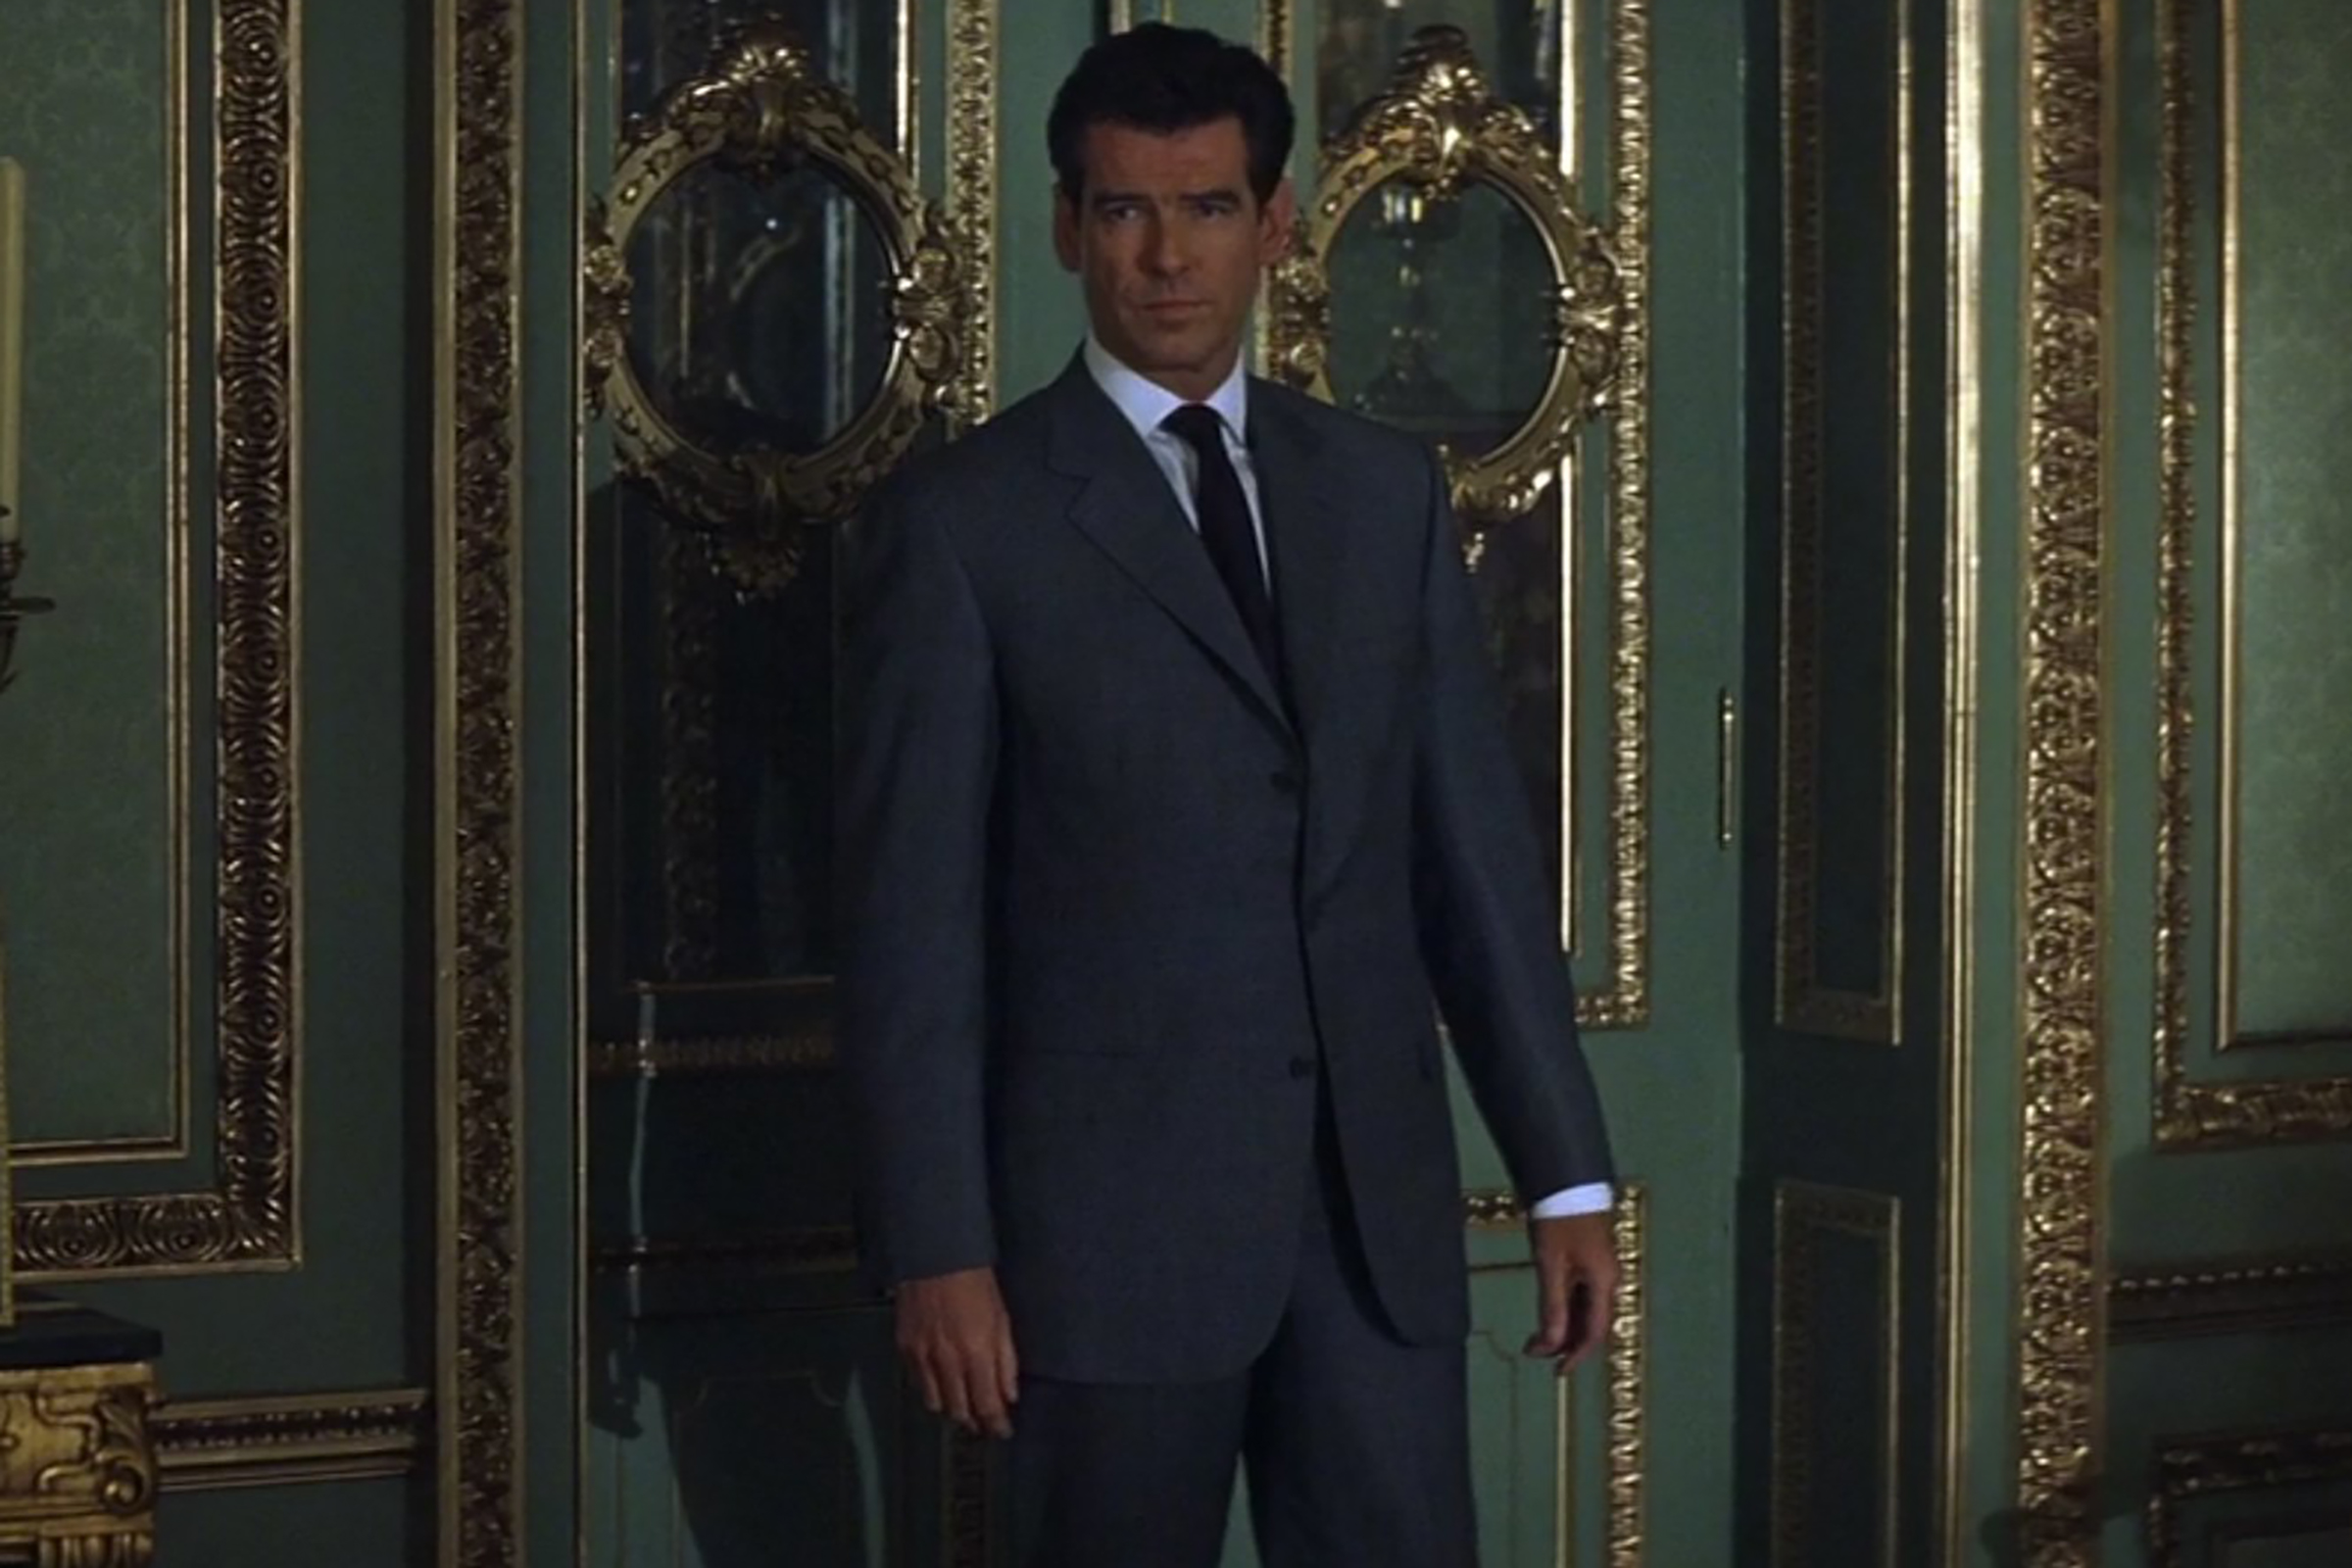 Pierce Brosnan wears a beautifully tailored suits from the Brioni house in The World is Not Enough.